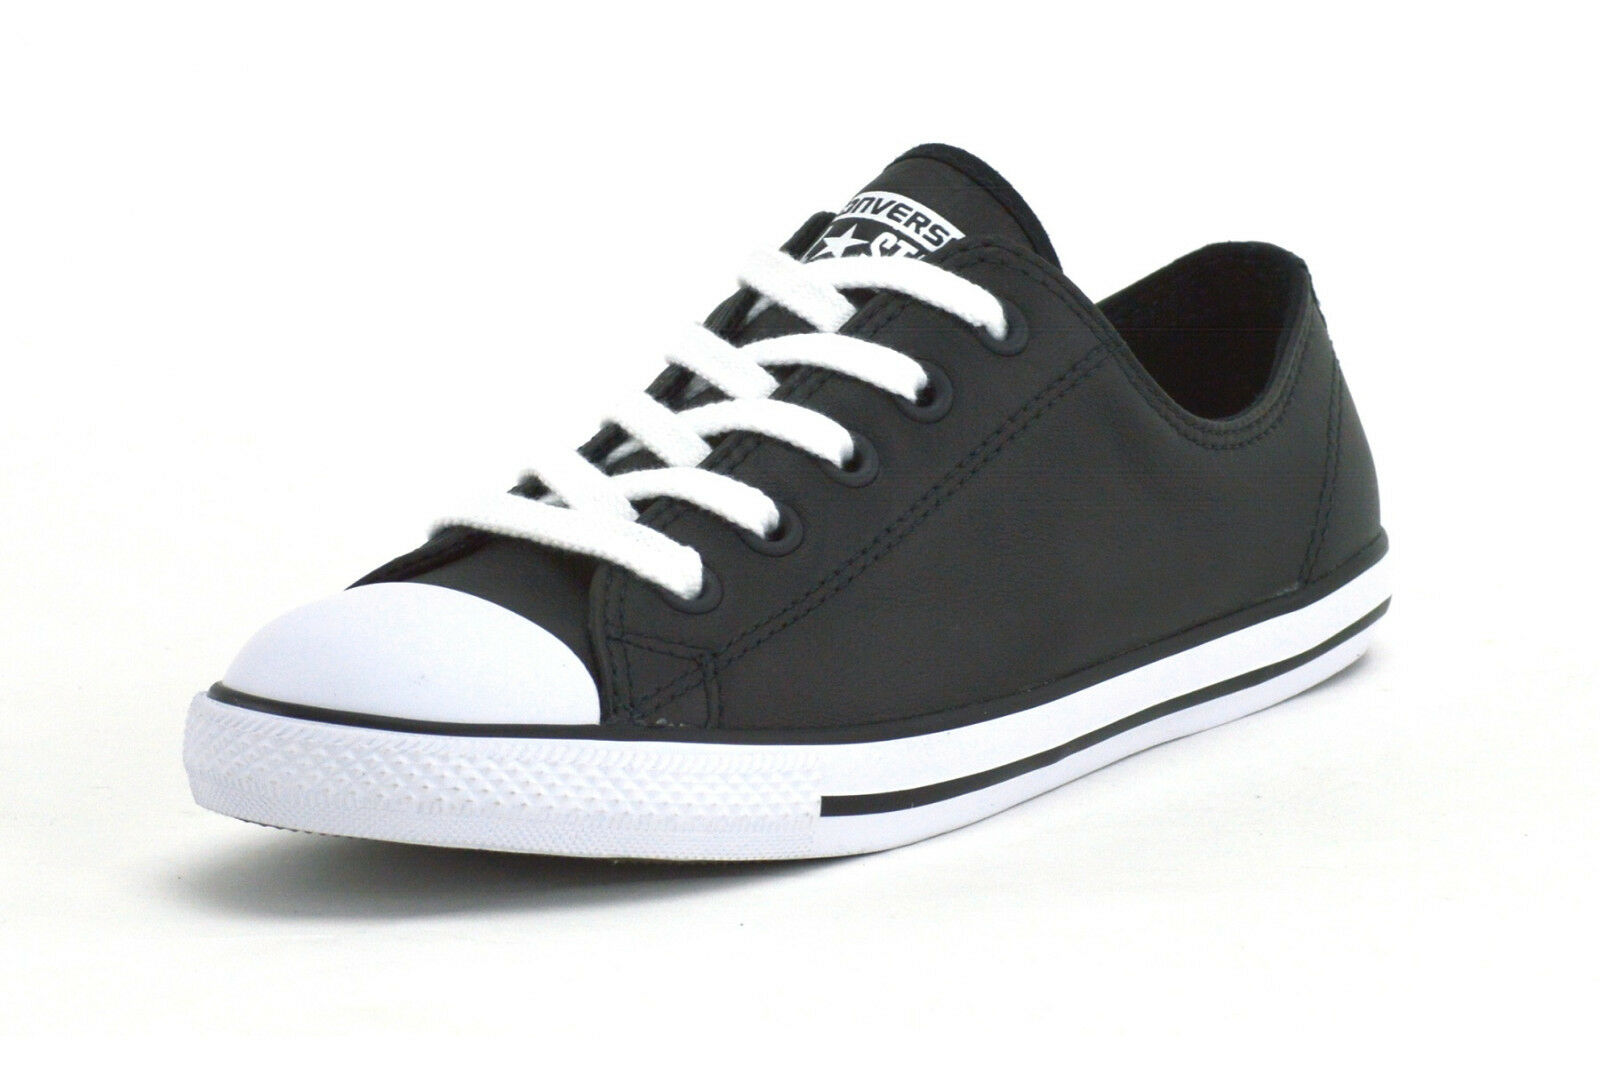 CONVERSE CT DAINTY LEATHER OX - 537107C -Damenschuhe SNEAKERS -BLACK/WEISS -BRAND NEW